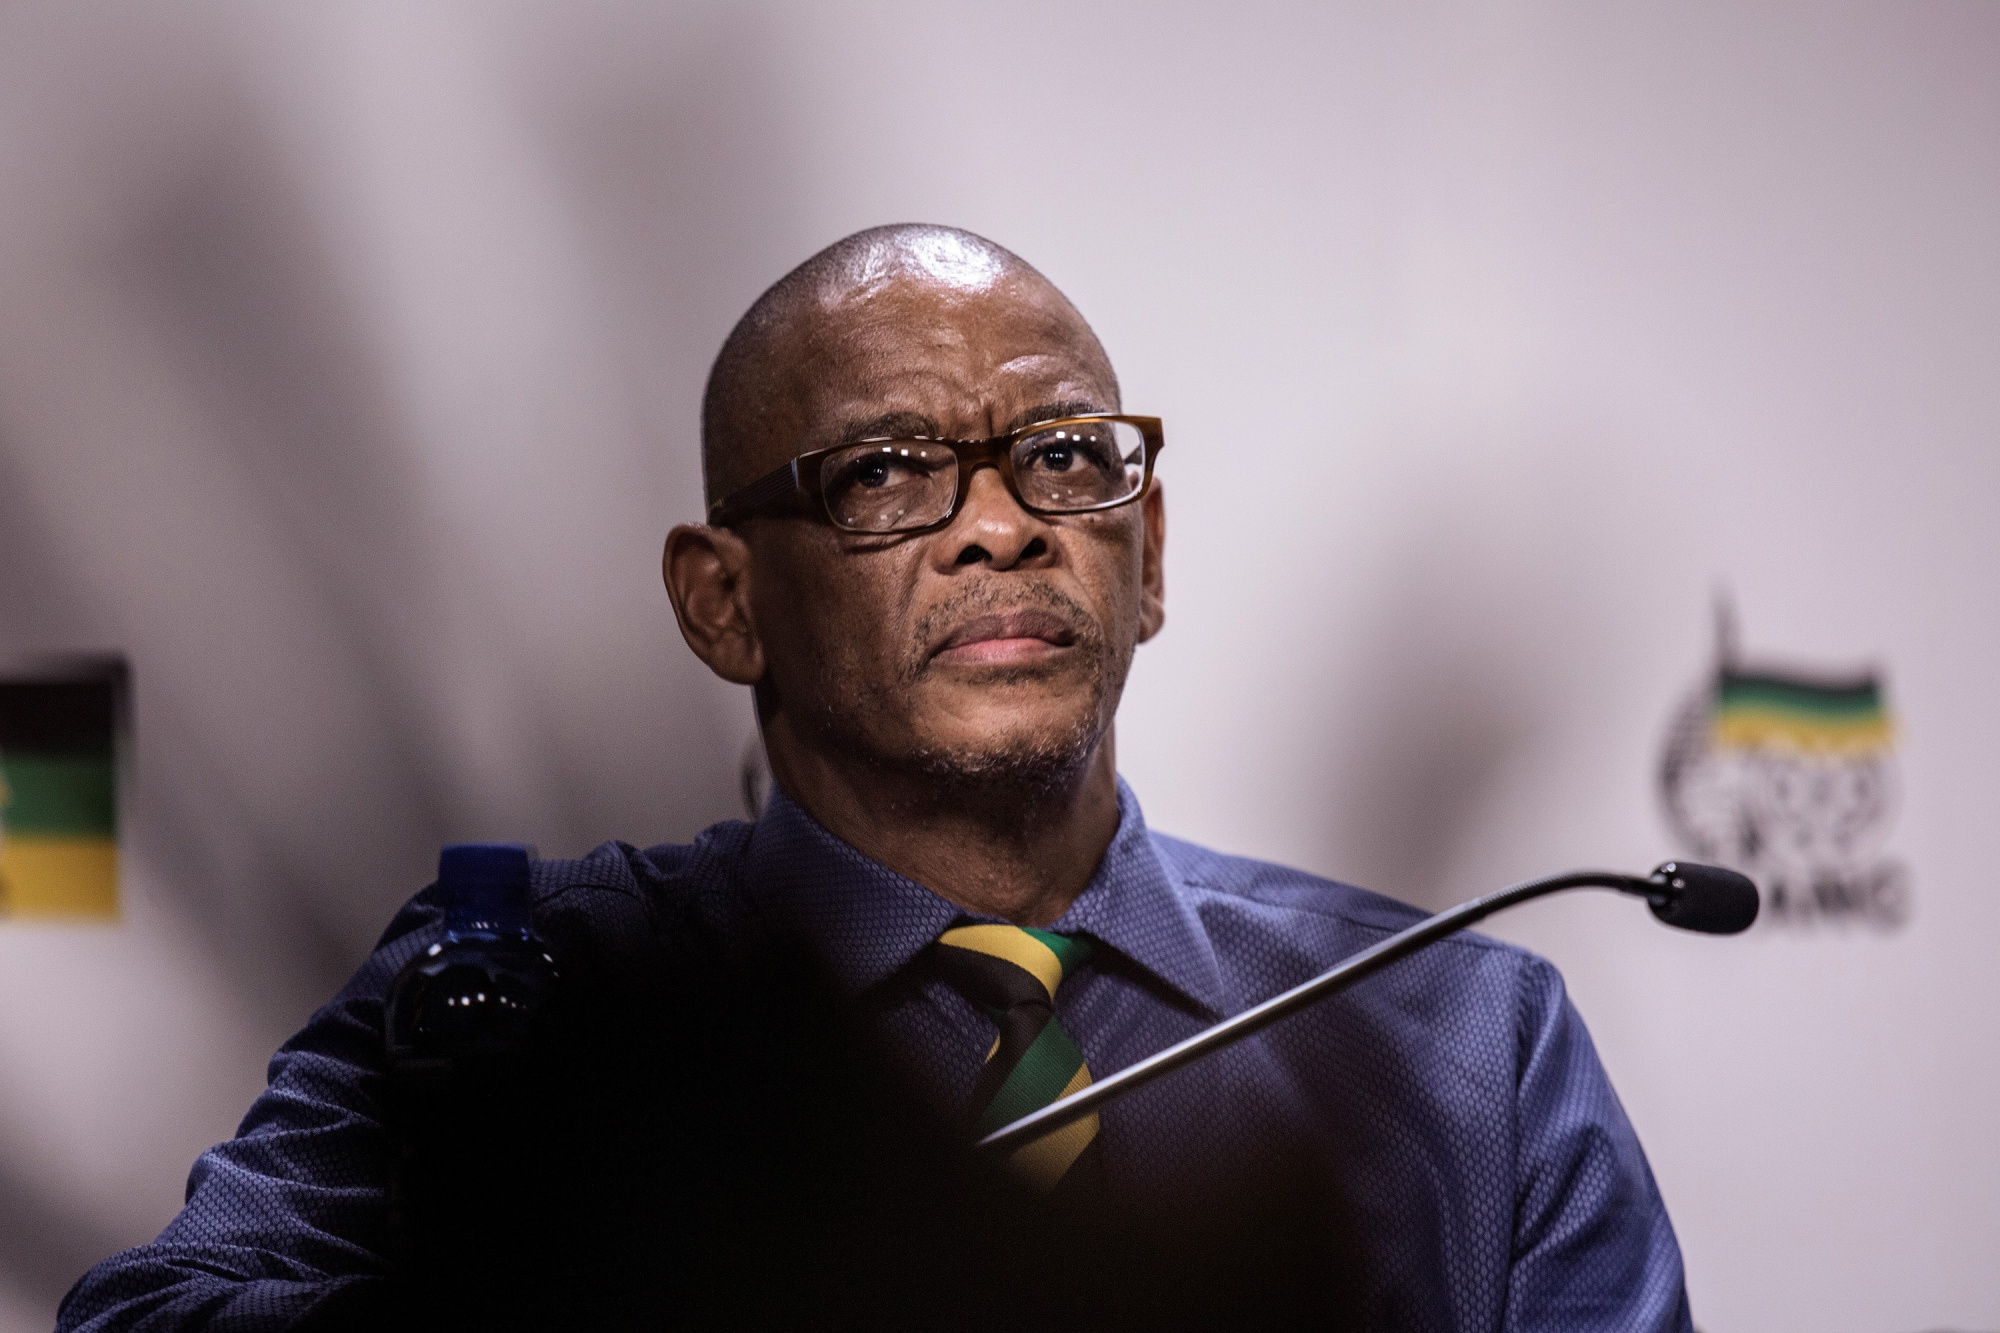 Auditor General of South Africa's executive arrested for fraud and corruption - Gauteng